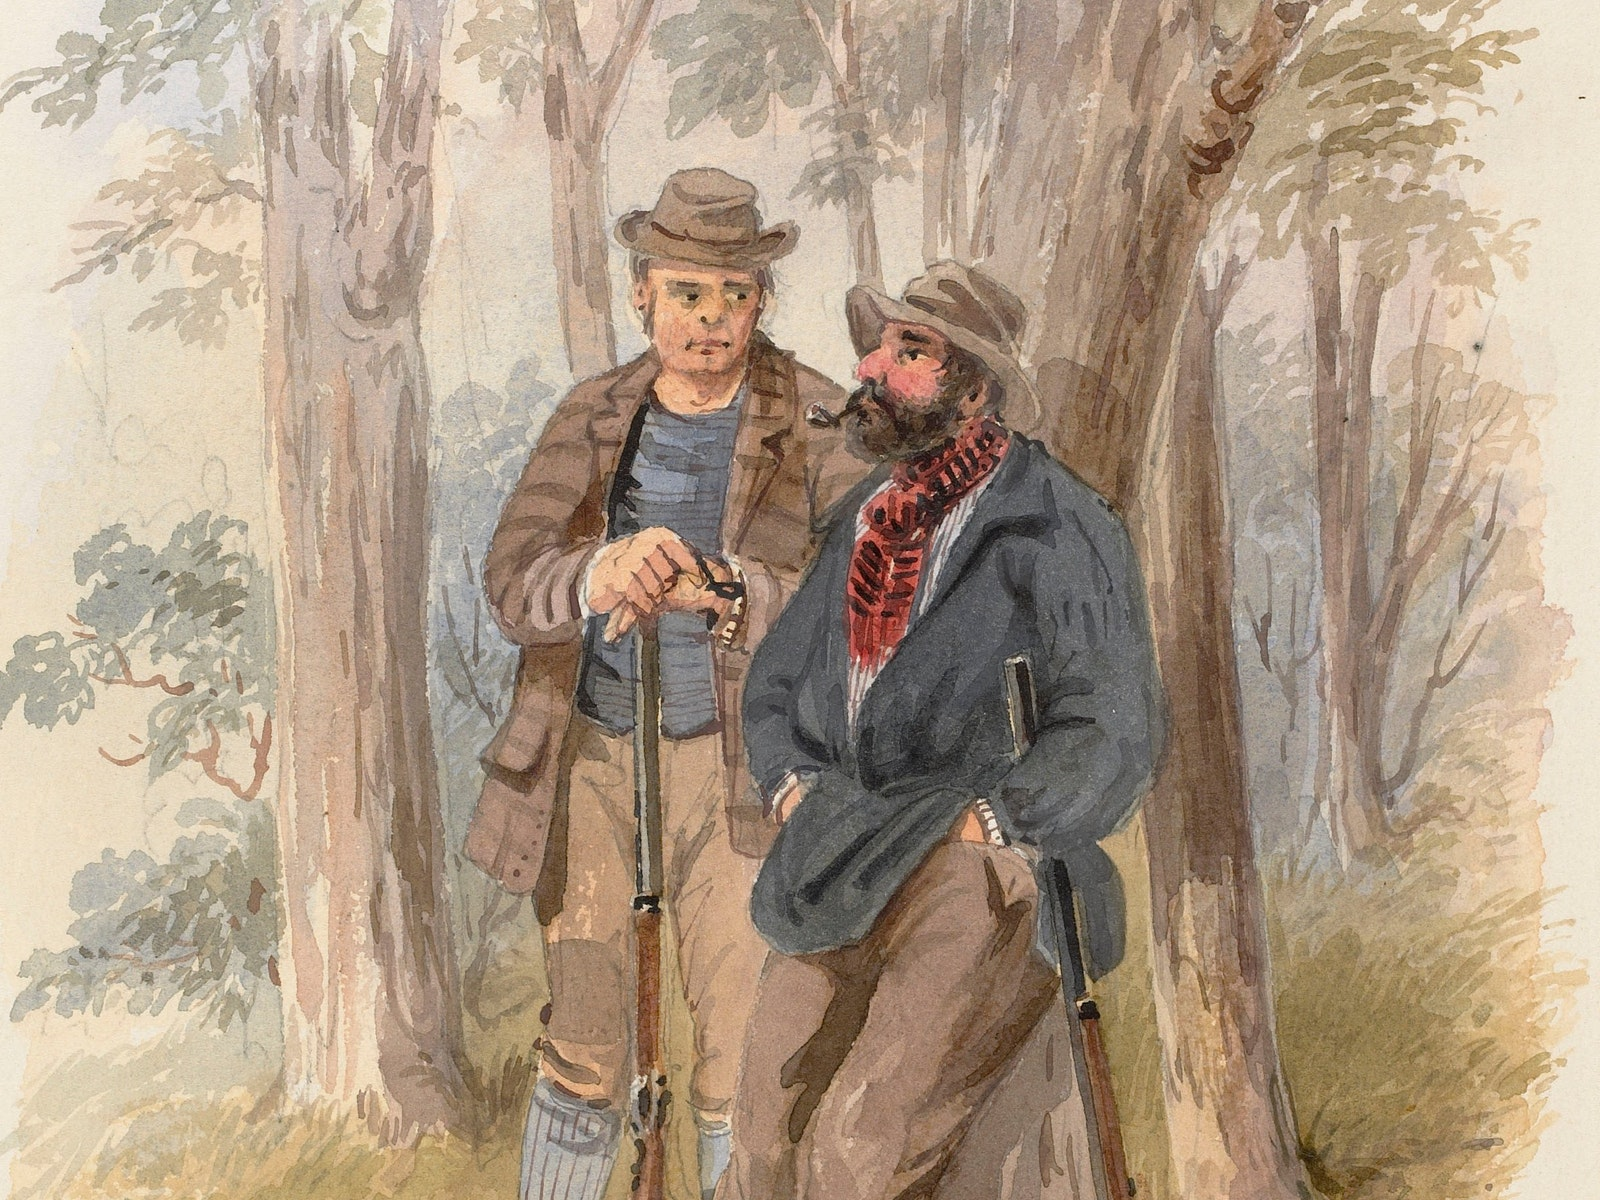 Dangerously suspicious by S.T. Gill. Courtesy of the La Trobe Collection State Library of Victoria